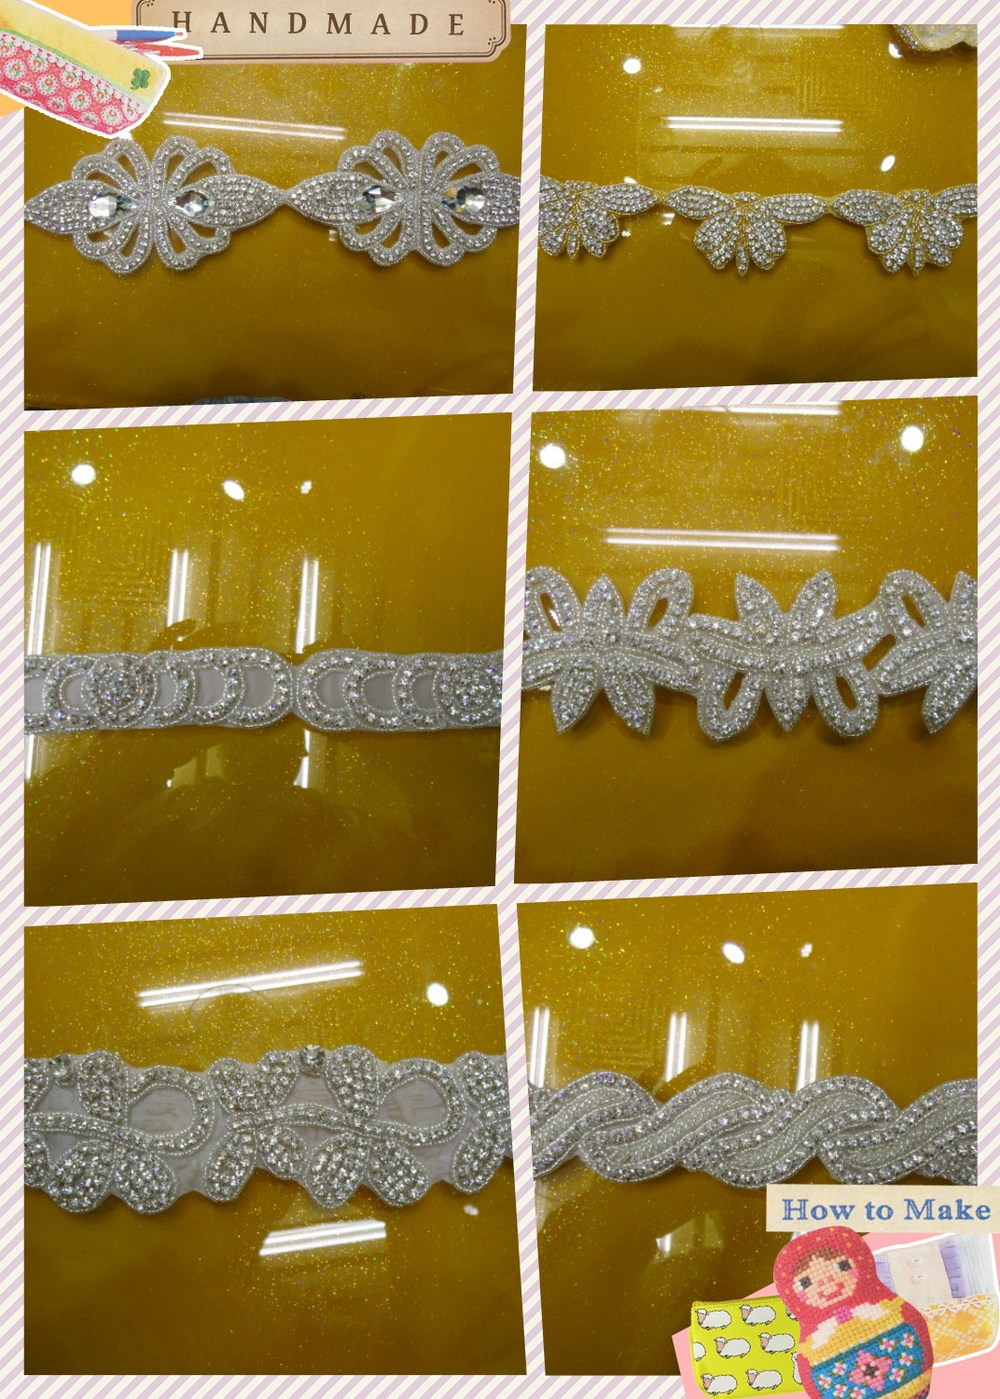 10 Meter Busana Kristal Berlian Imitasi Trims Applique Beaded Batu F30 10a5 Wallpaper Dinding Sticker Motif Bunga Stripe Daun Gratis Pengiriman Bridal Potong Untuk Wedding Sash Headbandusd 7800 Lot